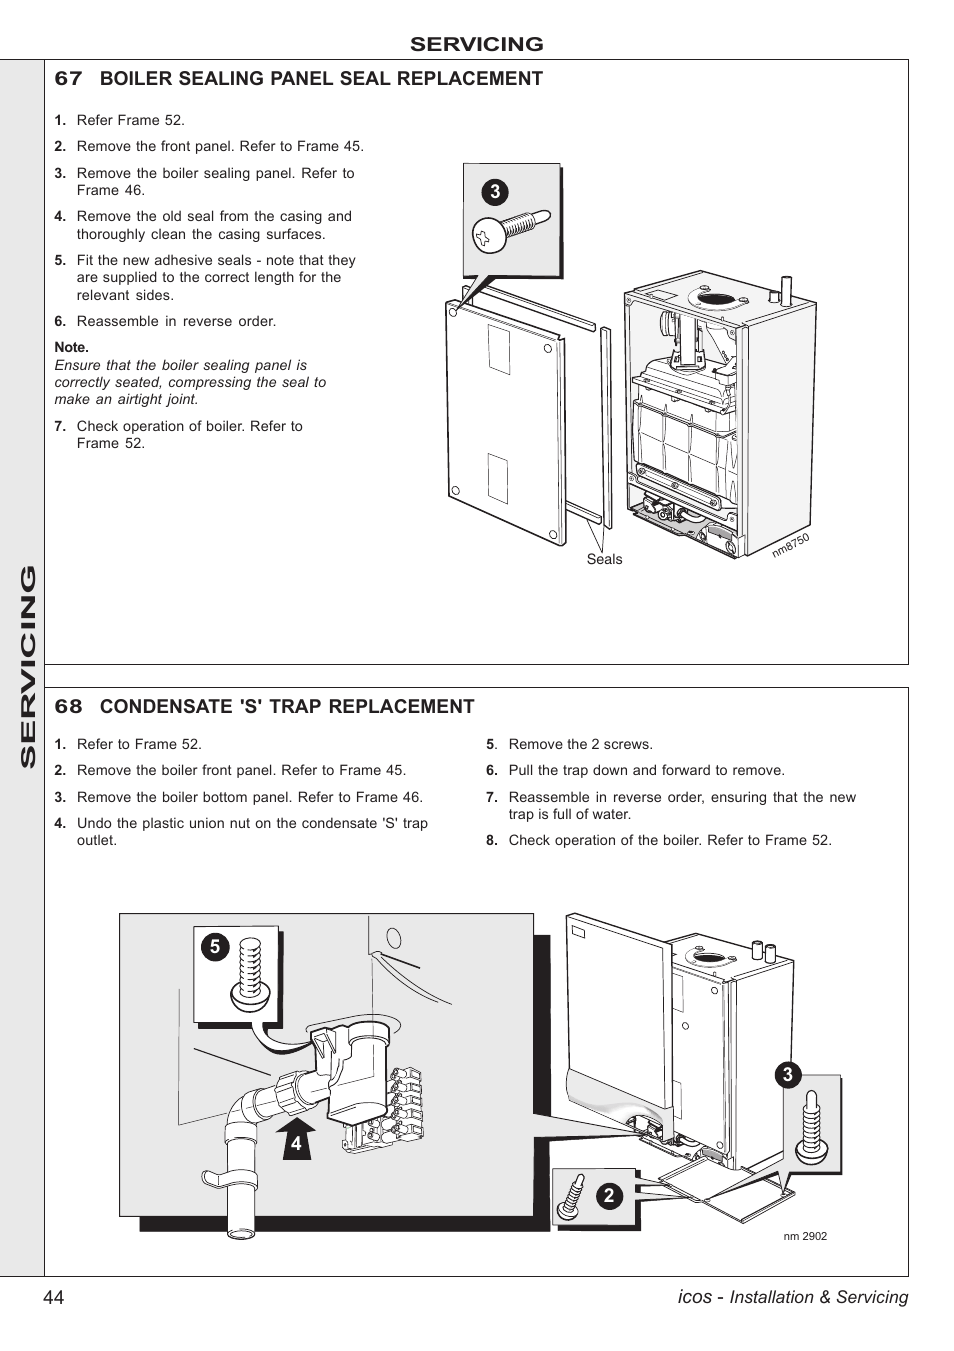 Boiler Installation Ideal Icos Manual Industrial Gas Wiring Diagram Images Of